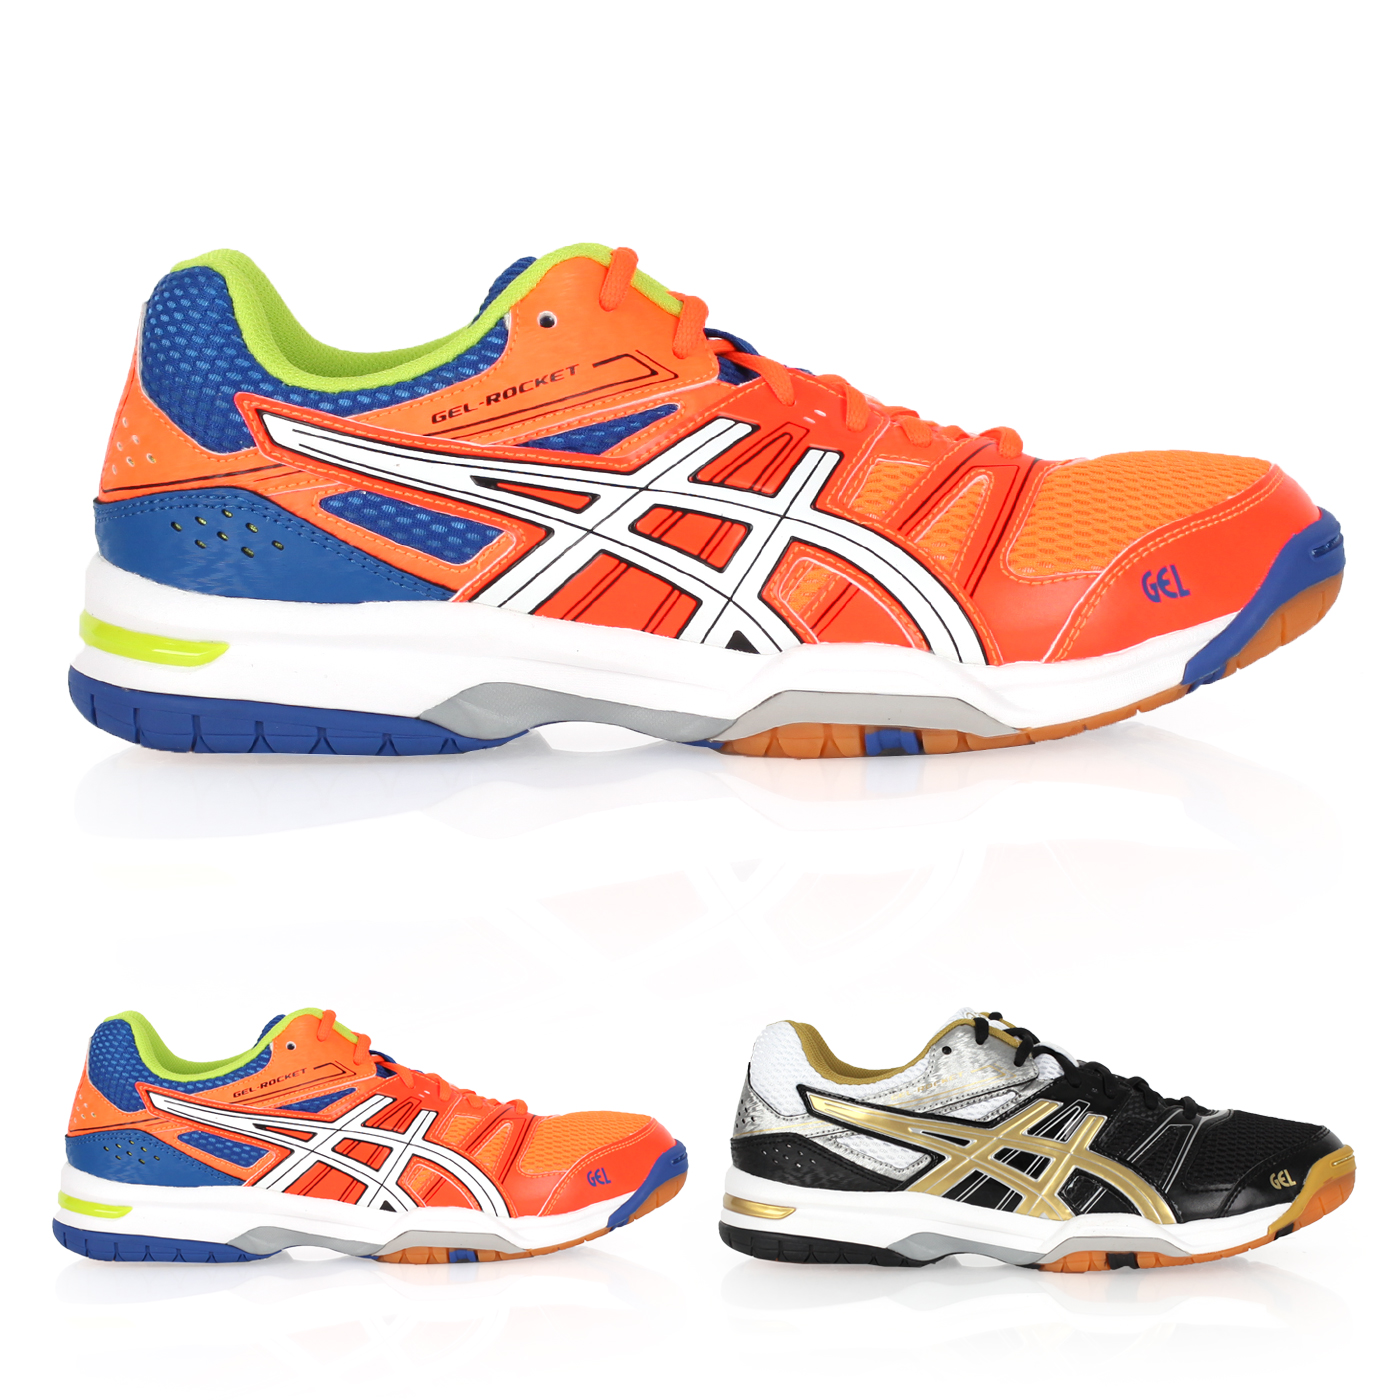 Buy 7 mens volleyball shoes asics GEL